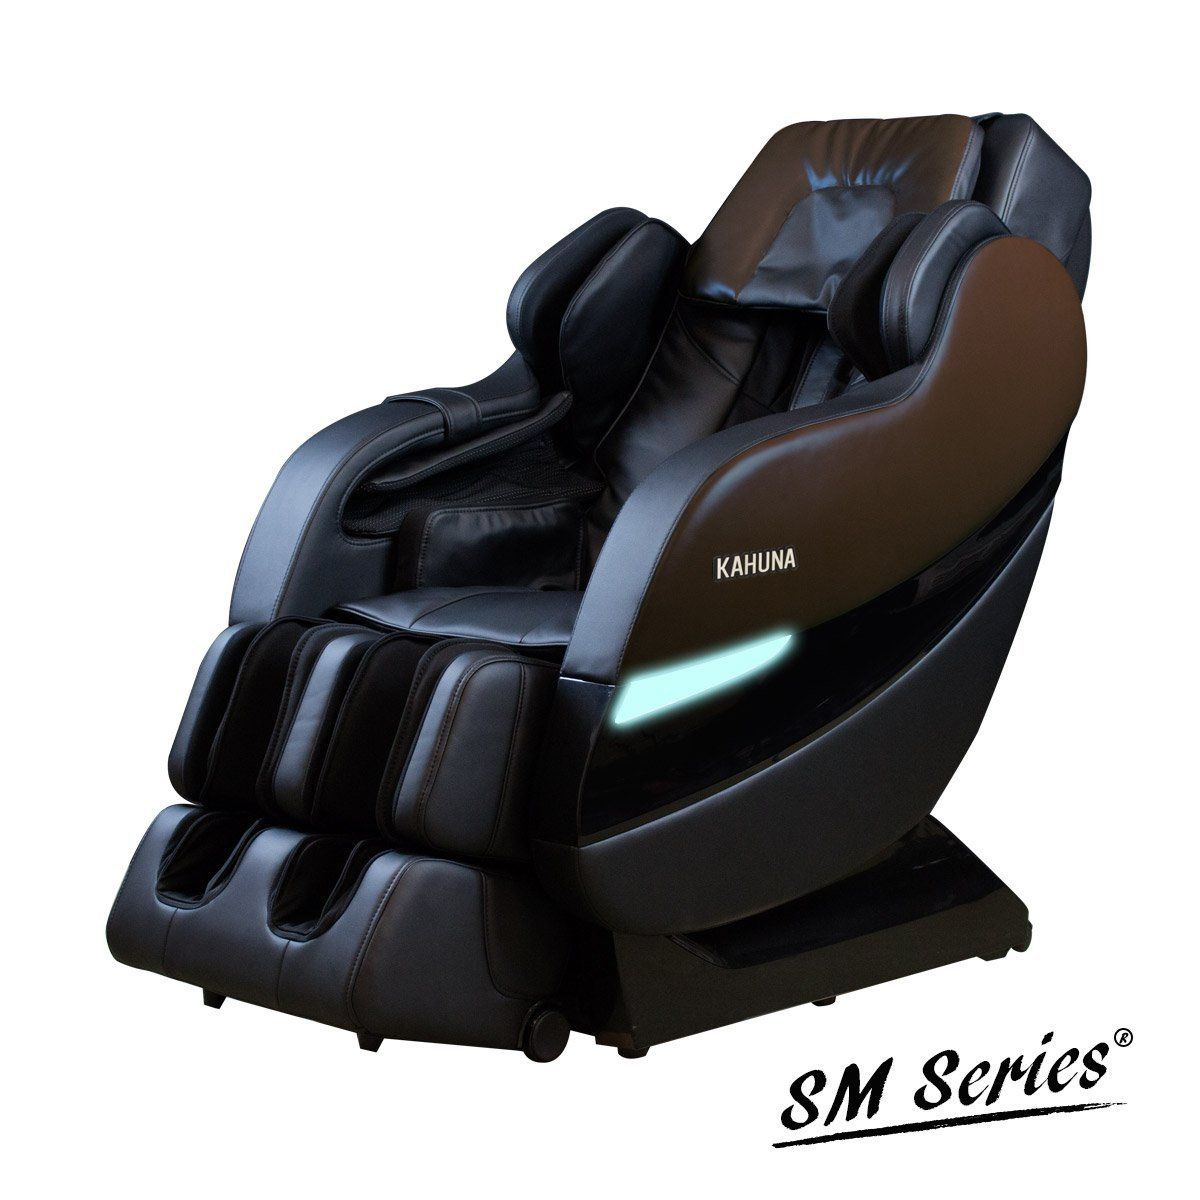 Top Performance Kahuna Superior Massage Chair with SLTrack